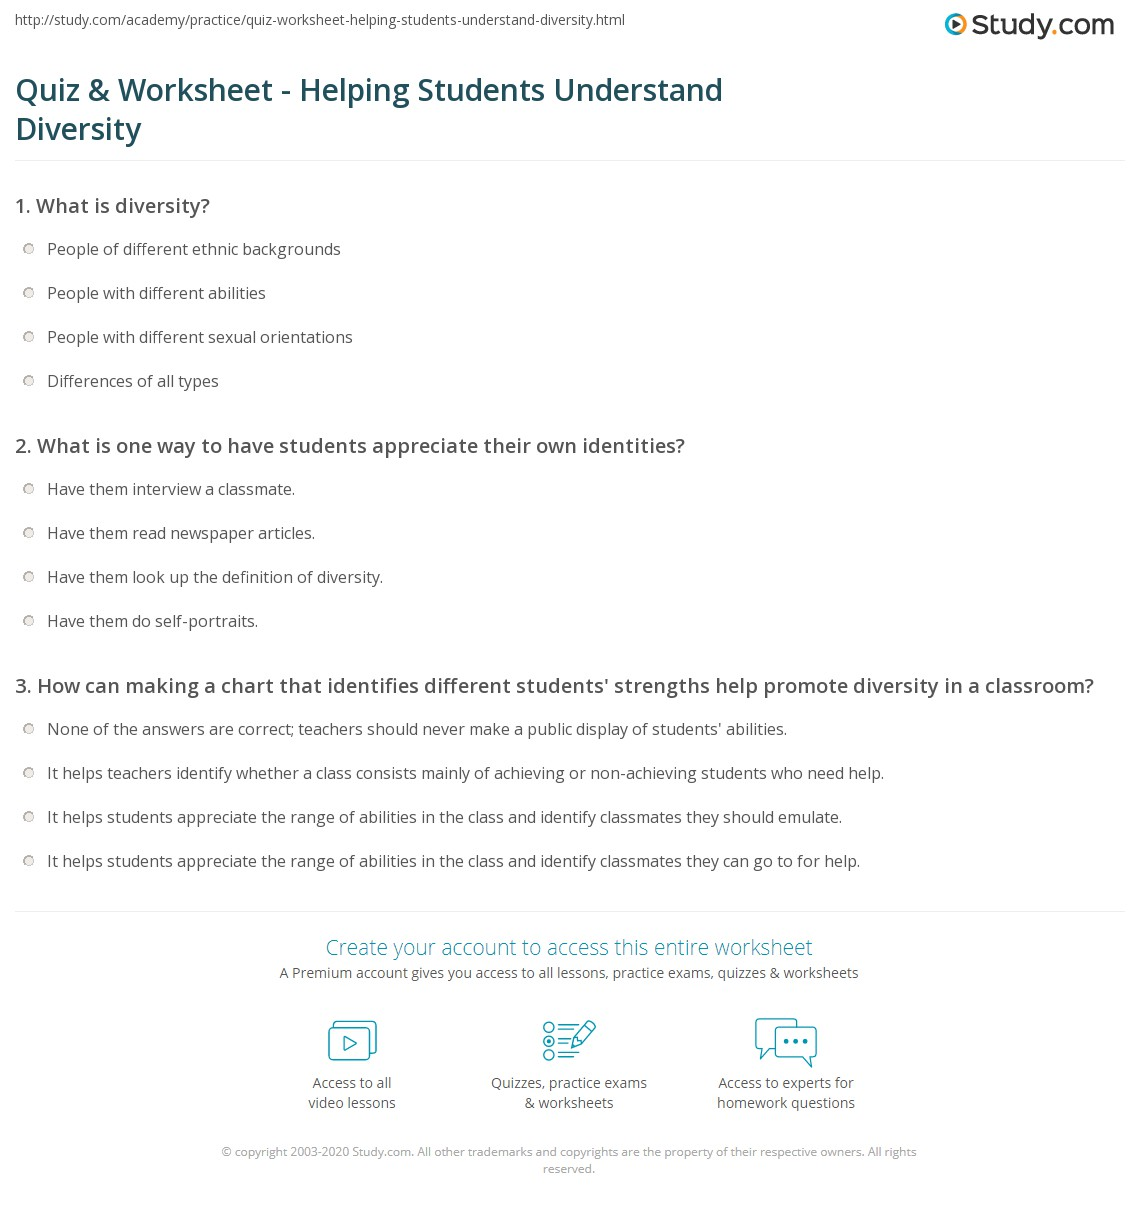 Quiz & Worksheet - Helping Students Understand Diversity | Study.com